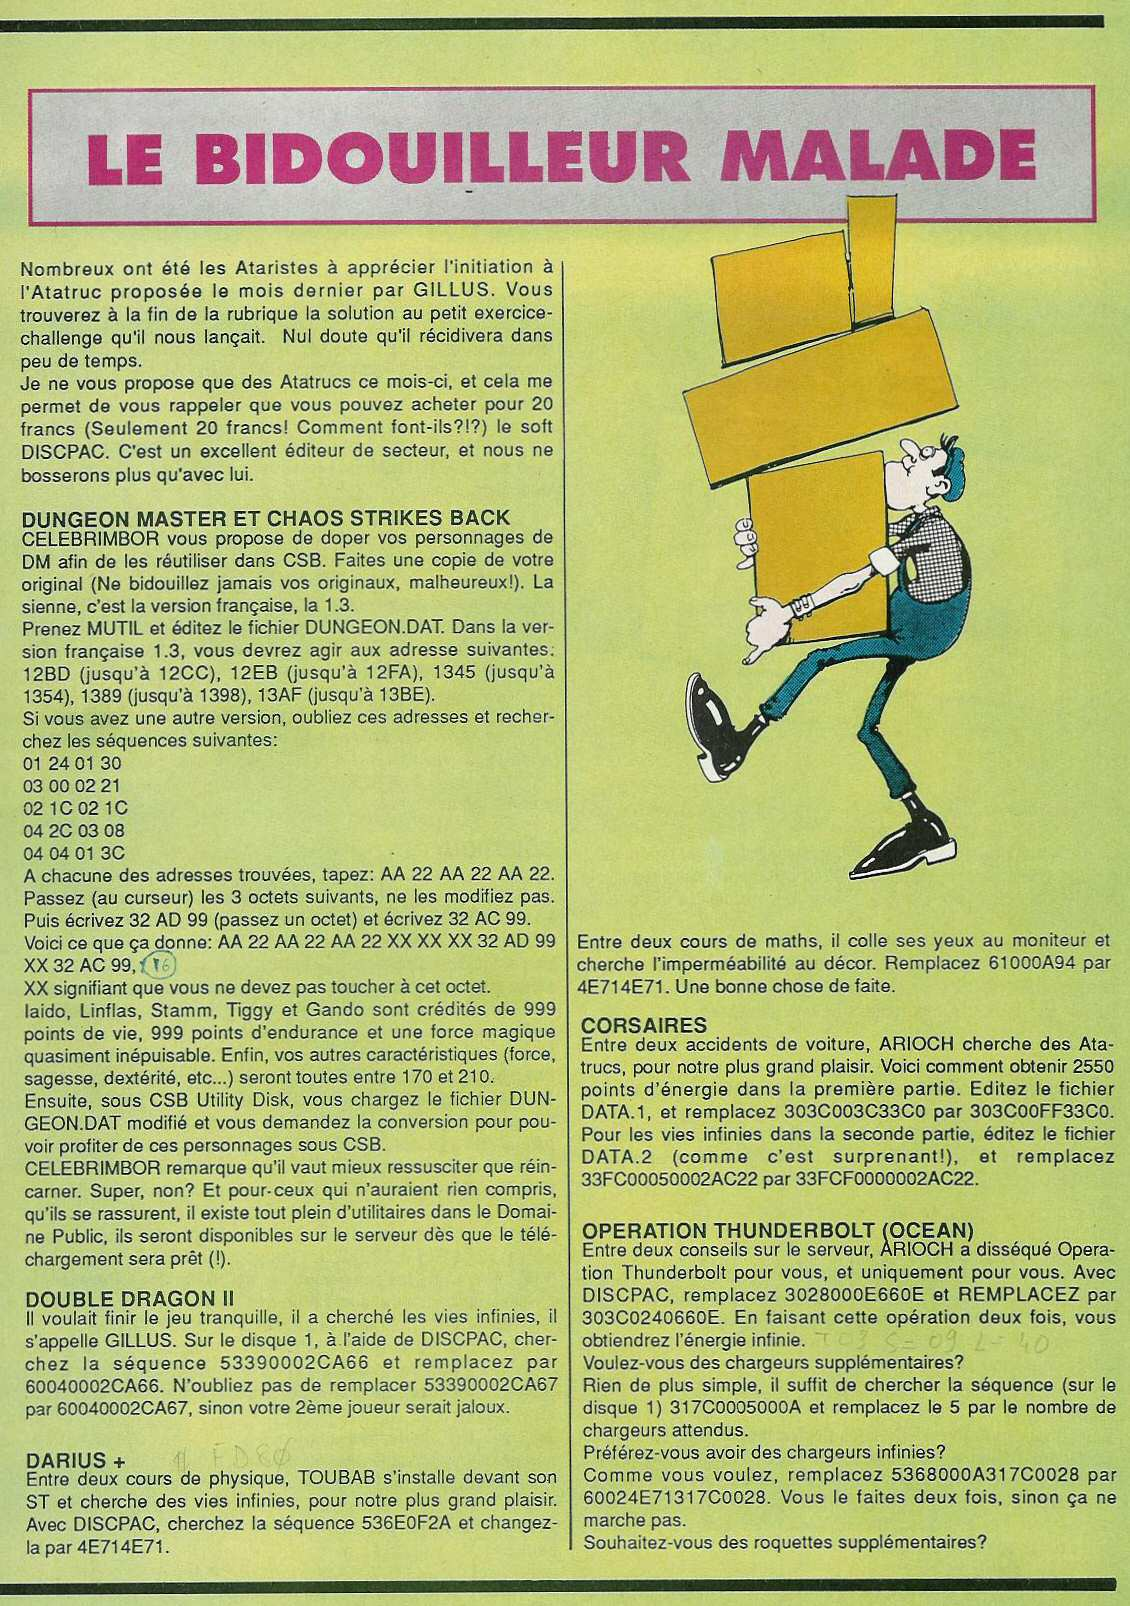 Chaos Strikes Back for Atari ST Cheat published in French magazine 'Gen4', Issue #20, March 1990, Page 81